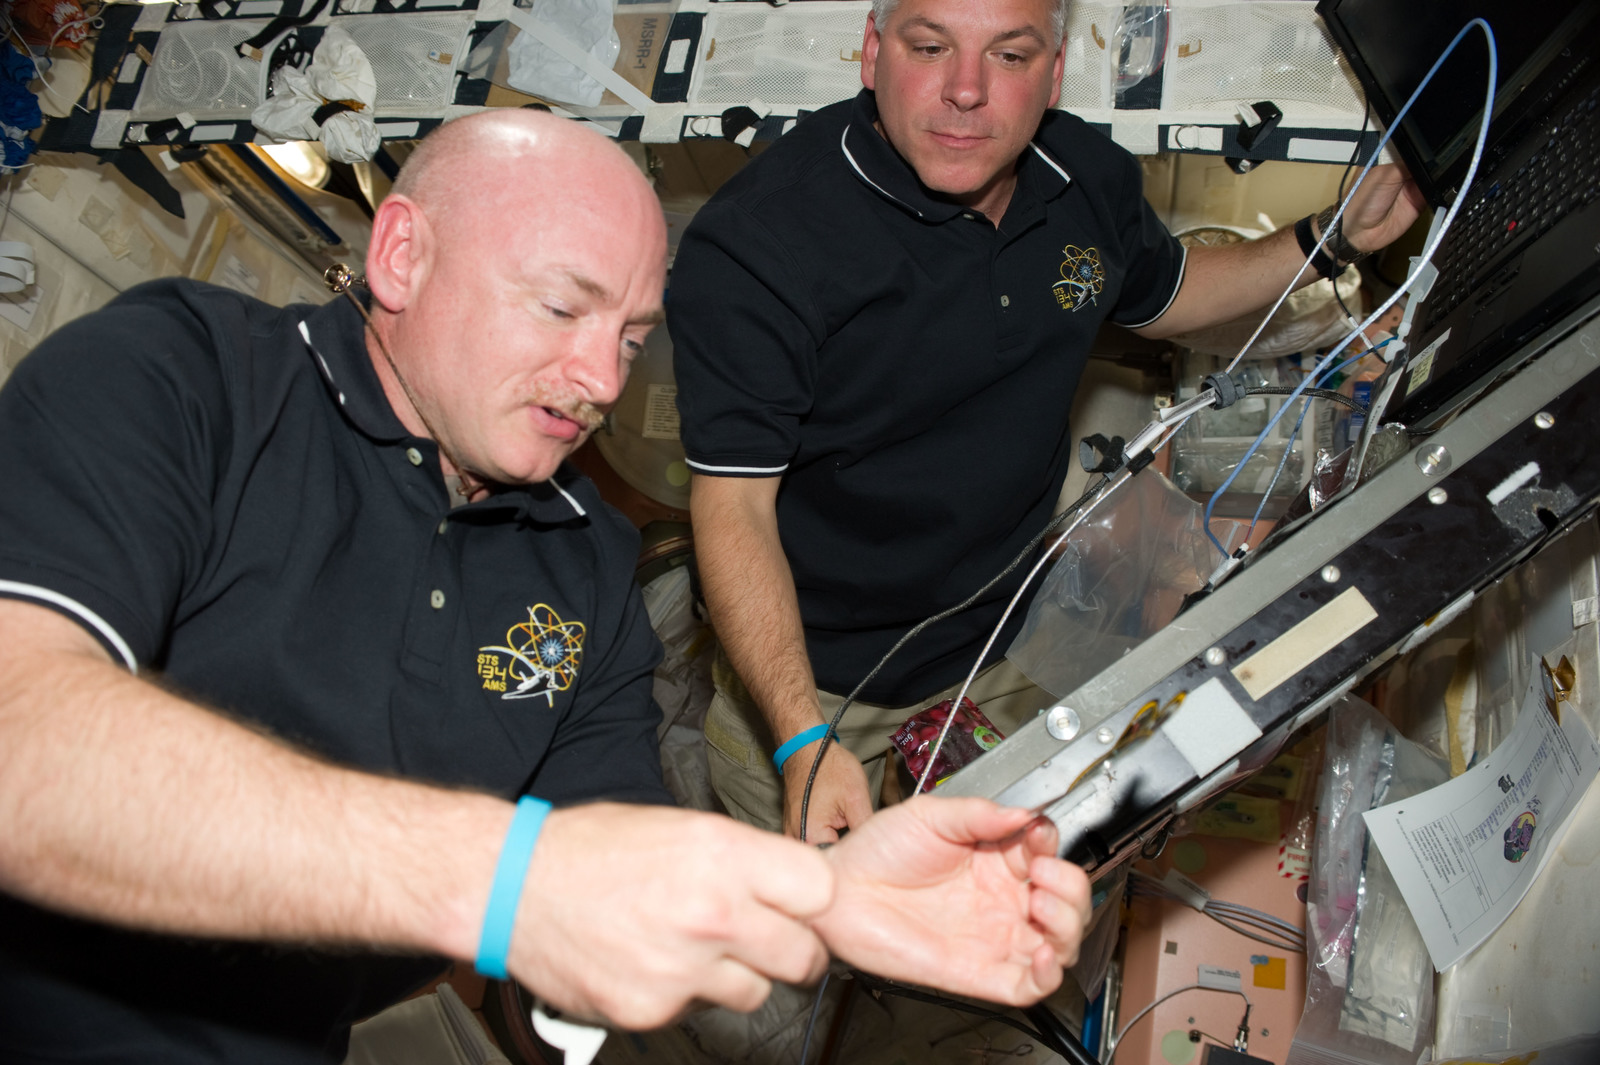 S134E008423 - STS-134 - STS-134 Crew Members add Mission Sticker to Node 1 Panel